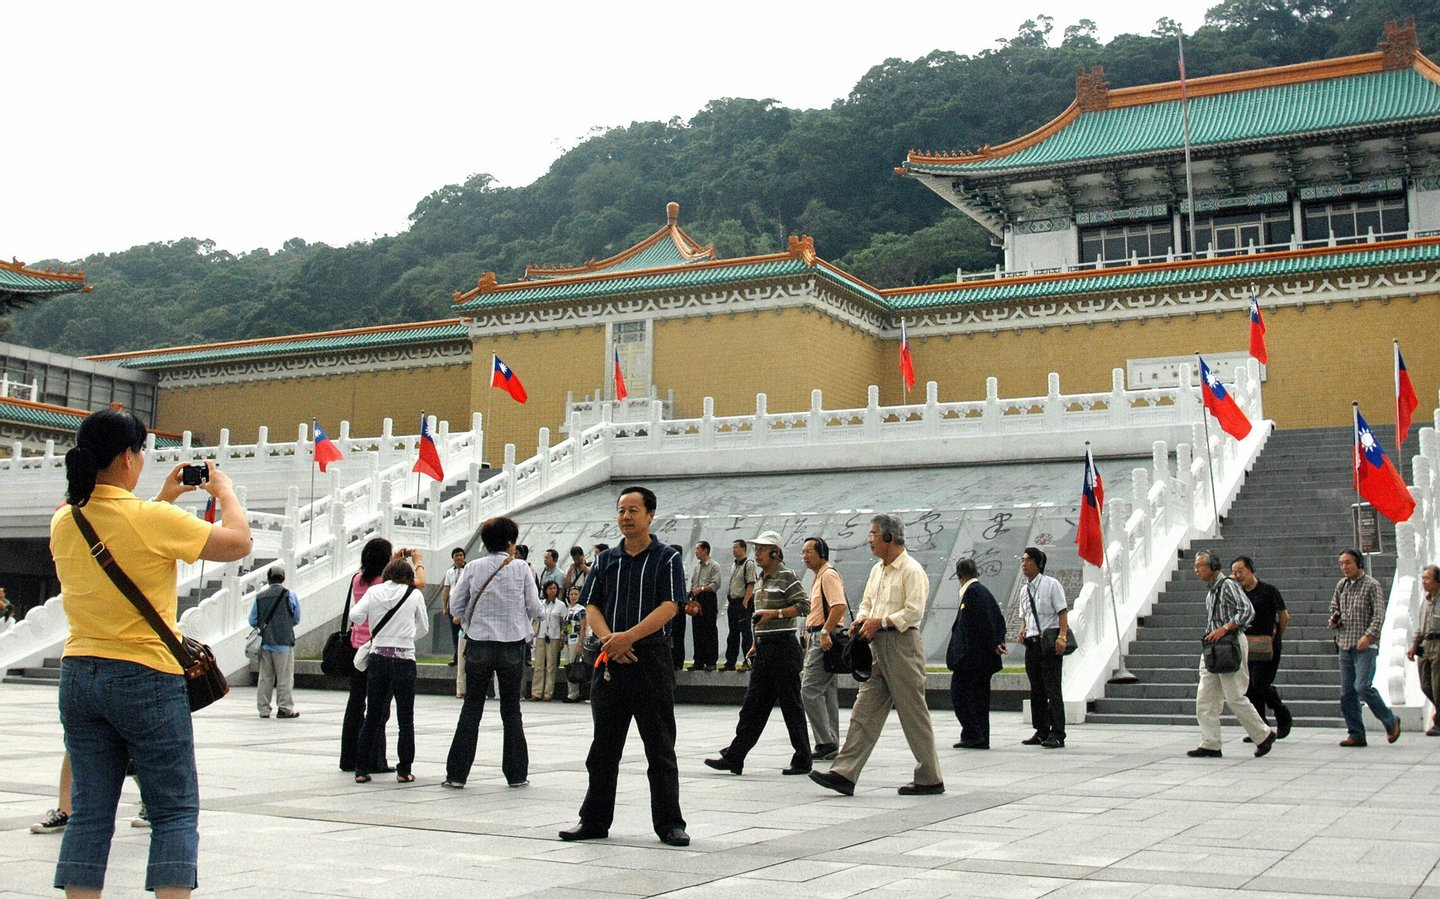 TO GO WITH: FINANCE-ECONOMY-TAIWAN-CHINA-TOURISM by Amber Wang Chinese tourists take pictures outside Taiwan's popular sight-seeing spot the National Palace Museum in Taipei on October 26, 2008. Taiwanese authorities were counting on the mainland visitors to bring in 60 billion Taiwan dollars (1.87 billion US) annually in a major boost to its tourism but despite the rapprochement between the two sides, fewer than 300 Chinese visitors came to the island on average every day since July. AFP PHOTO/PATRICK LIN (Photo credit should read PATRICK LIN/AFP/Getty Images)